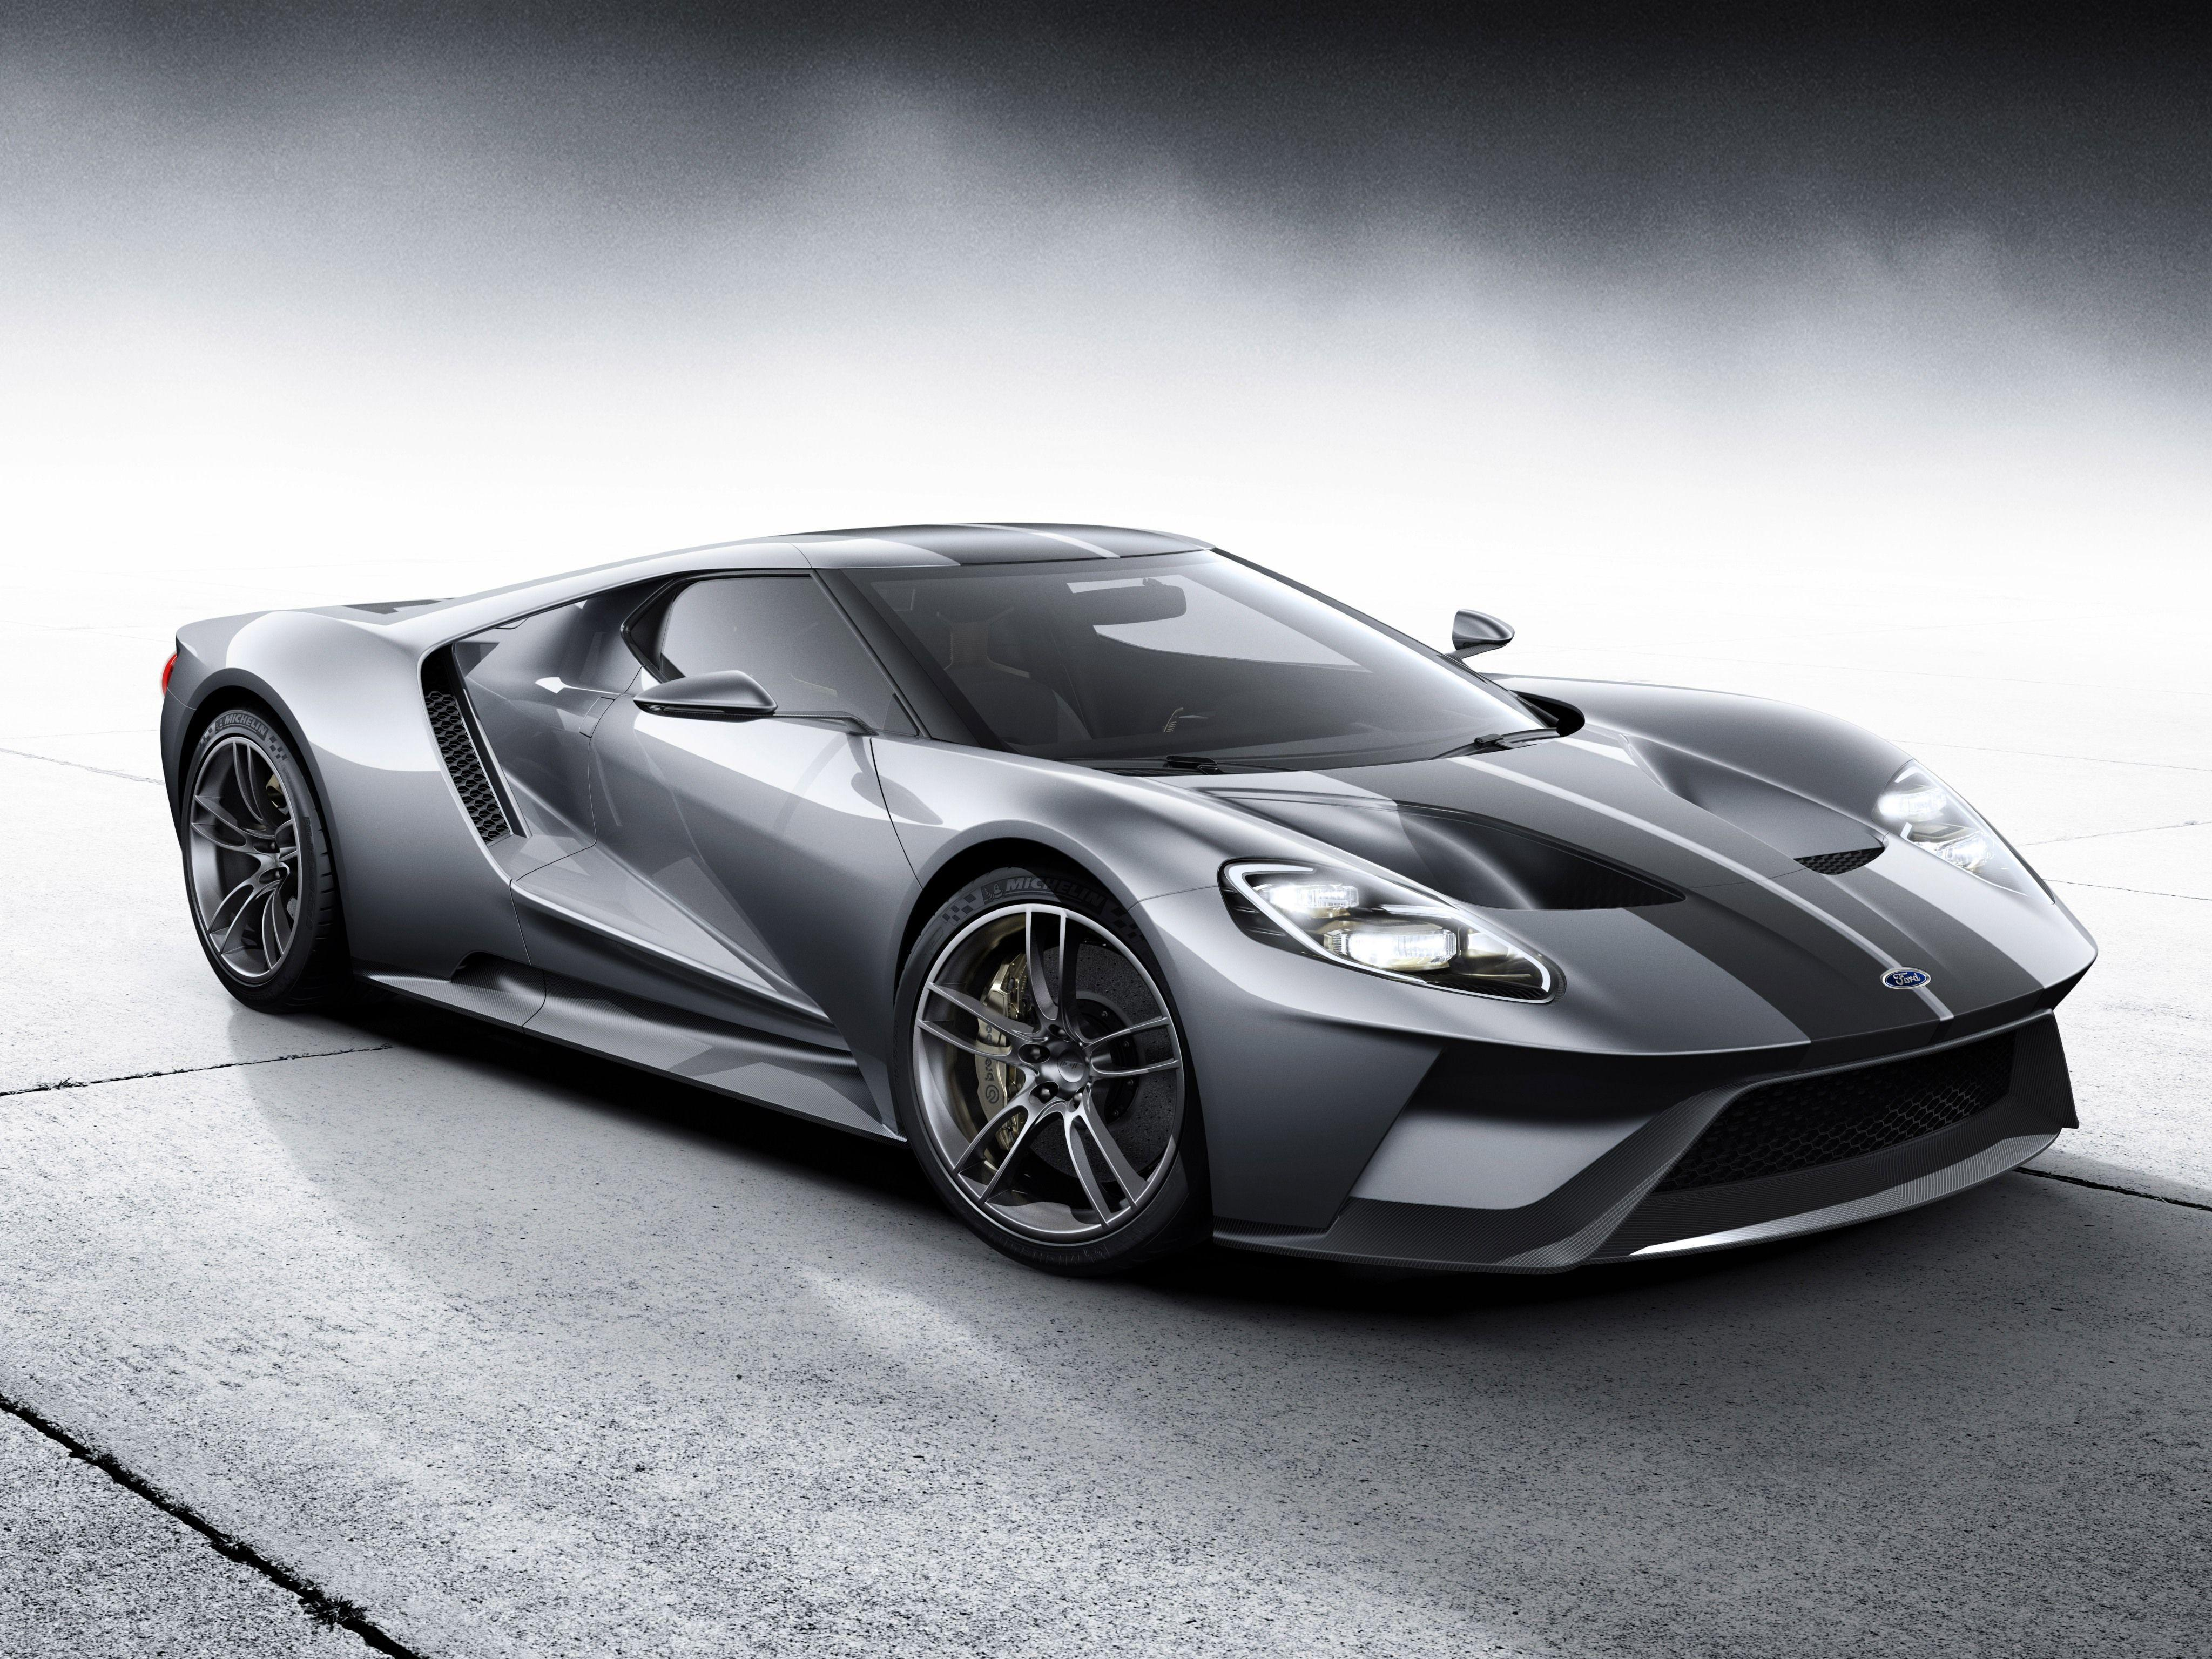 Sports Cars Wallpapers HD Wallpaper Cave - Sports cars of 2017